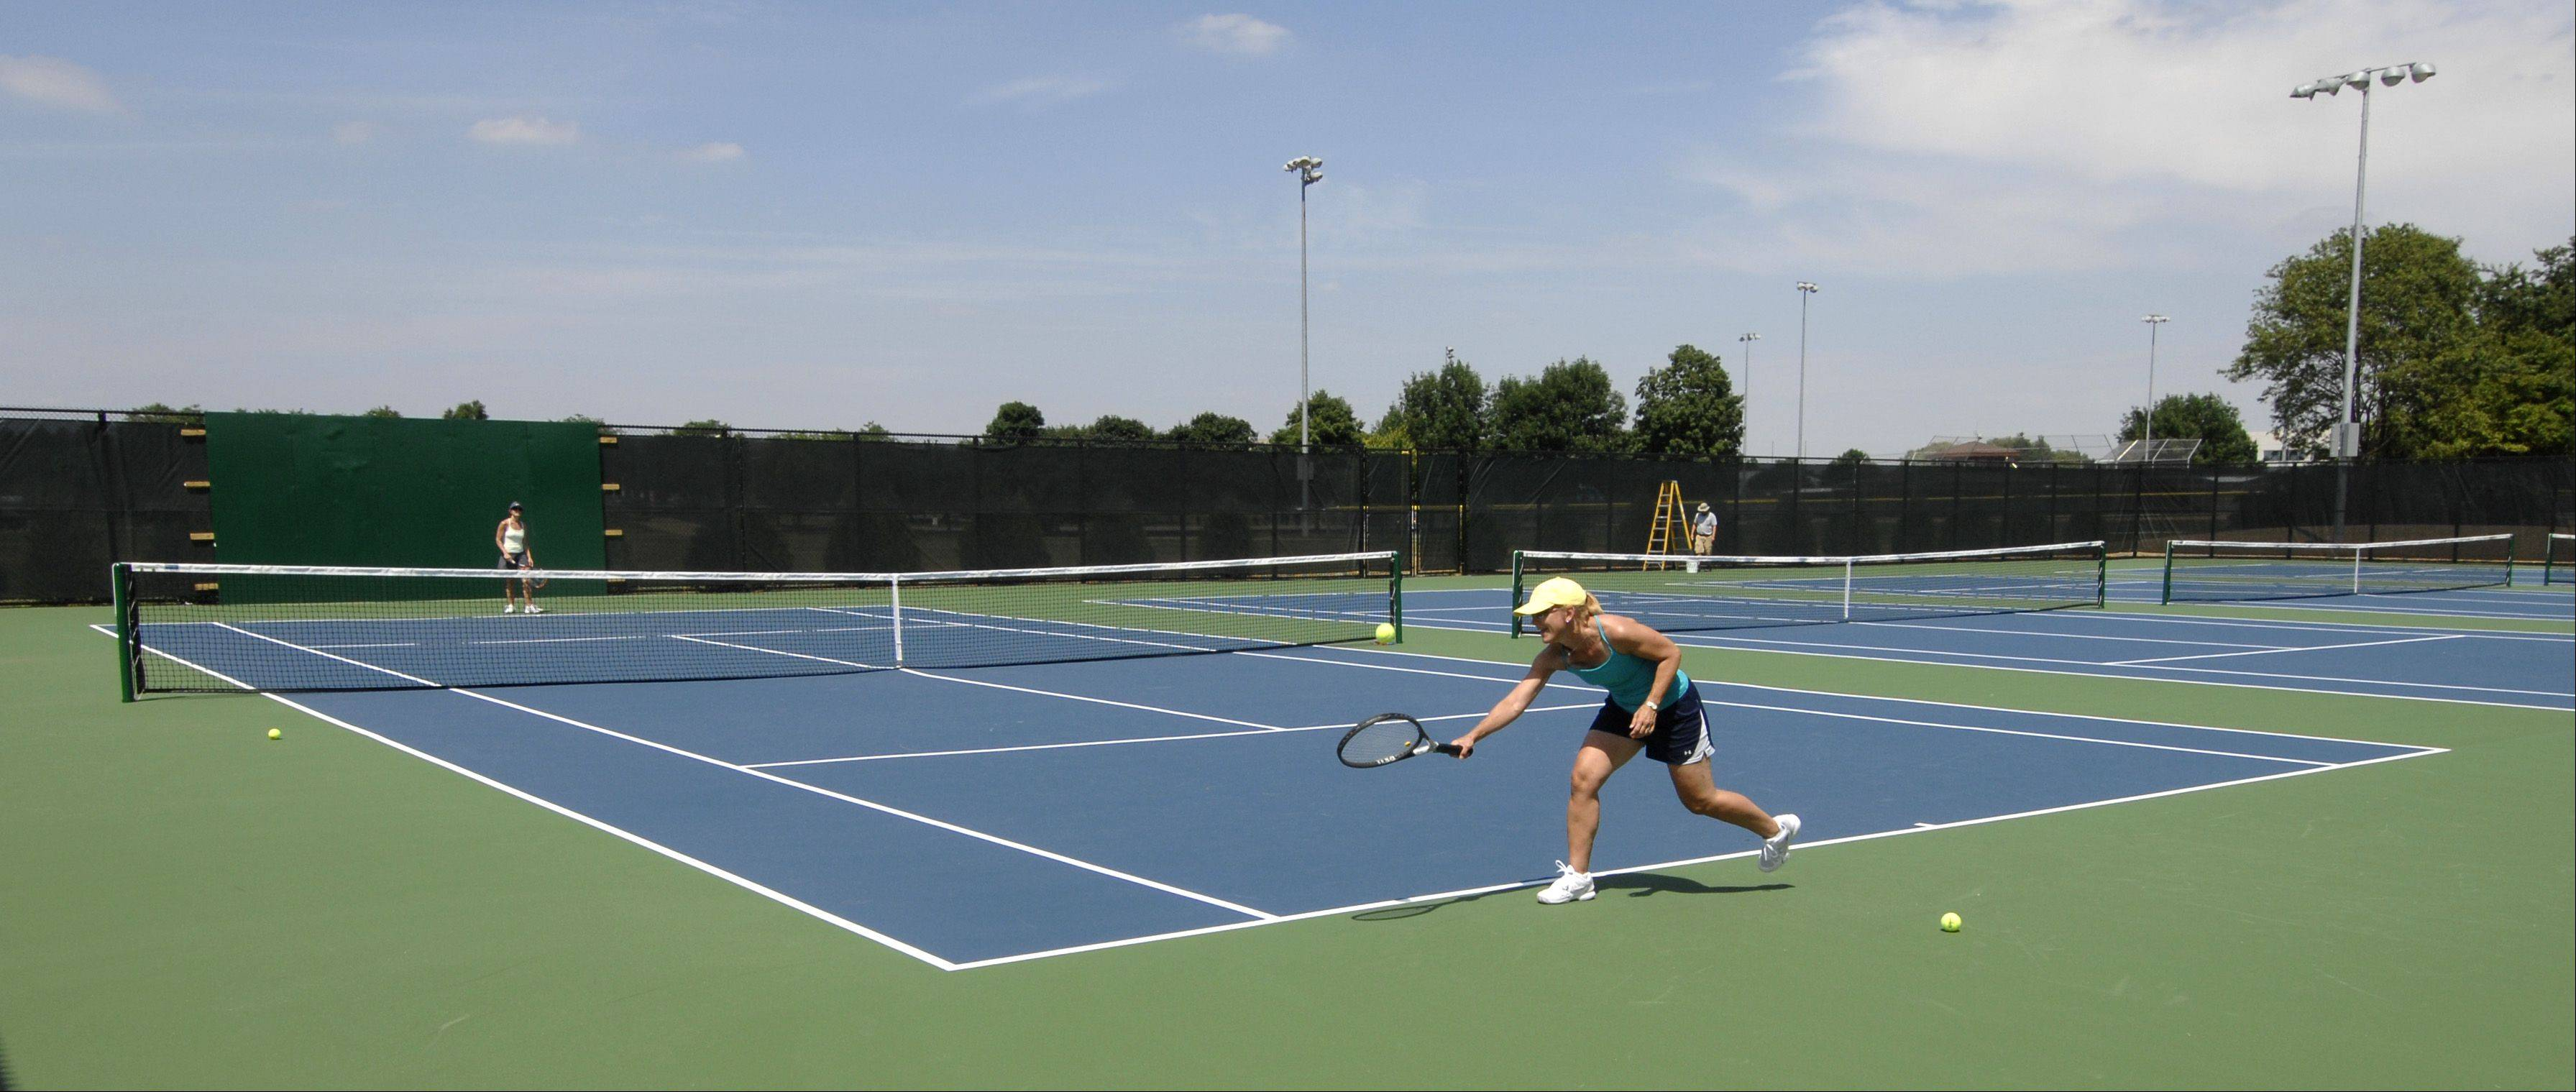 Eight new tennis were added to Nike Sports Complex on Naperville's north side. The expanded park officially reopens at 10 a.m. Saturday.